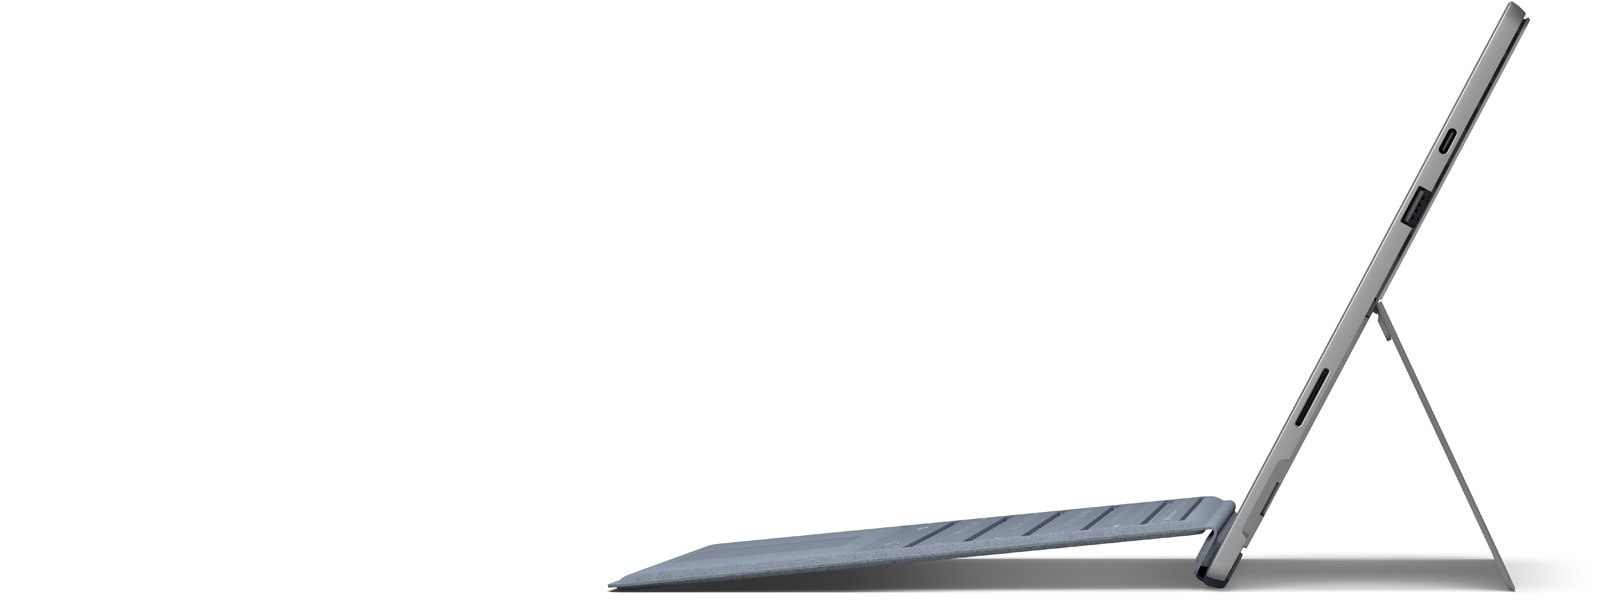 Surface Pro 7 side profile with a Type Cover attached